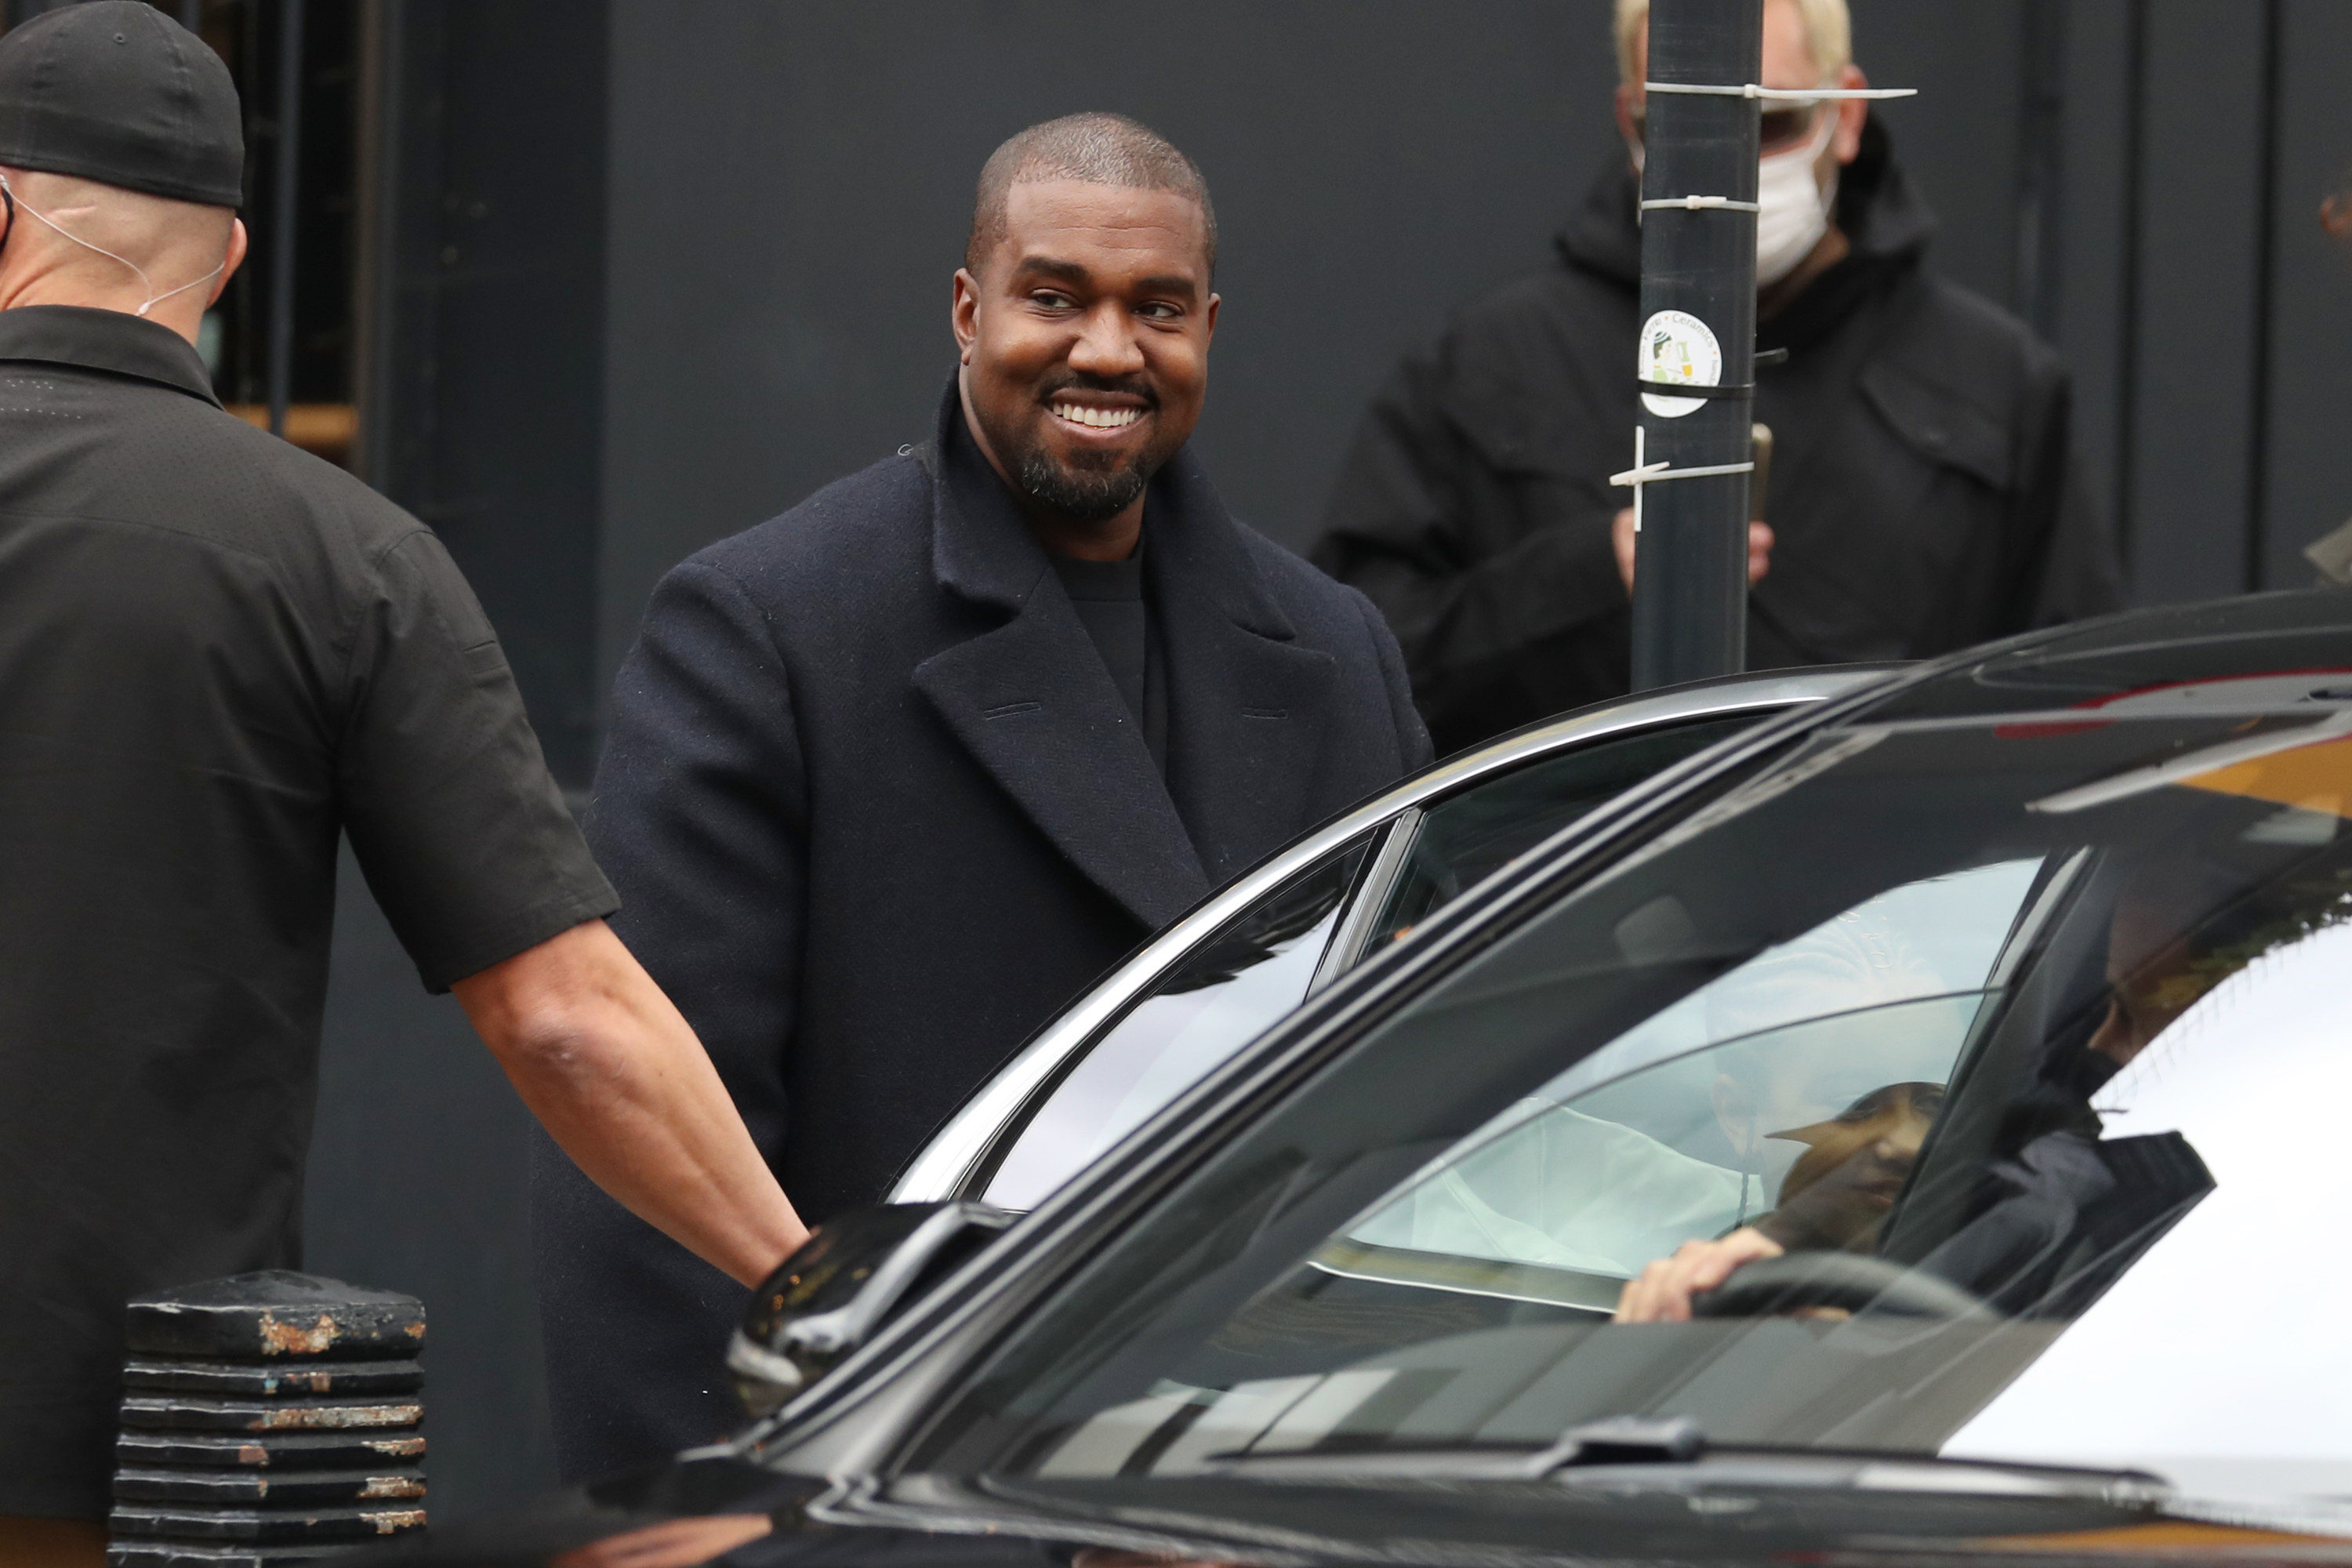 Kanye West seen leaving Michiko Sushino restaurant with his daughter North West in Queen's Park on October 10, 2020 in London, England